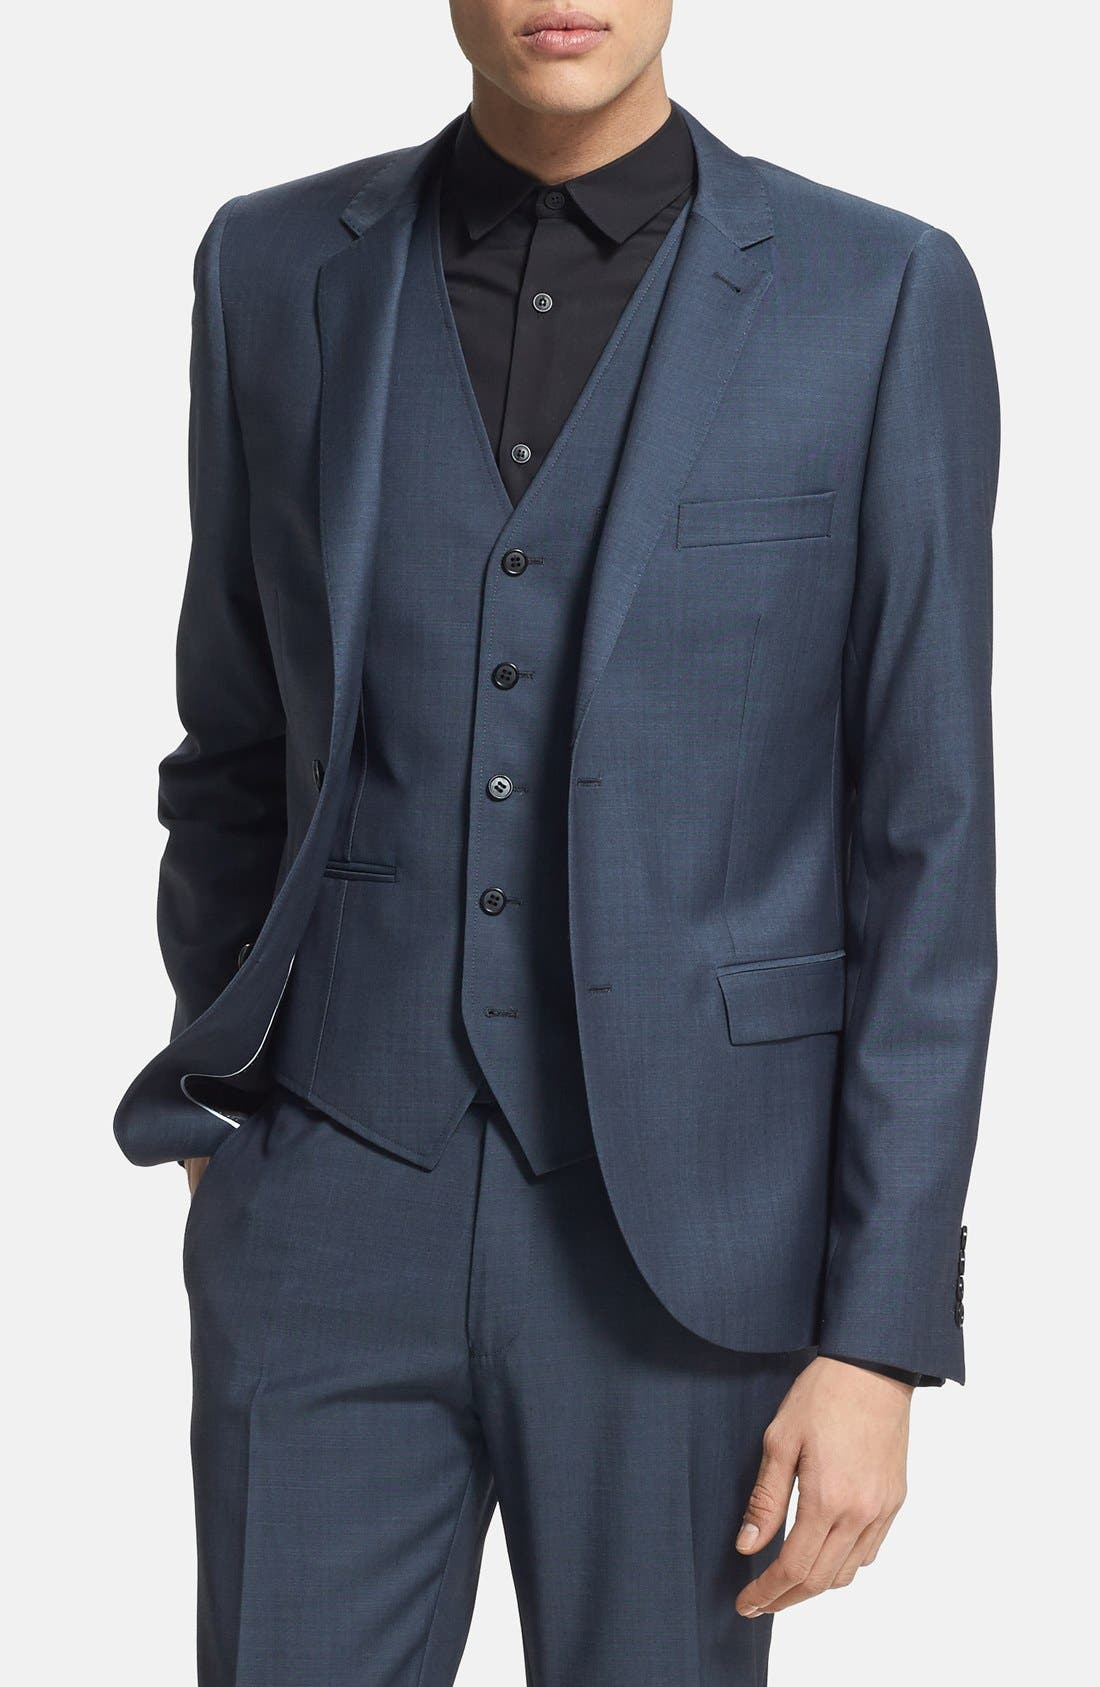 Main Image - Topman Skinny Fit Navy Suit Jacket